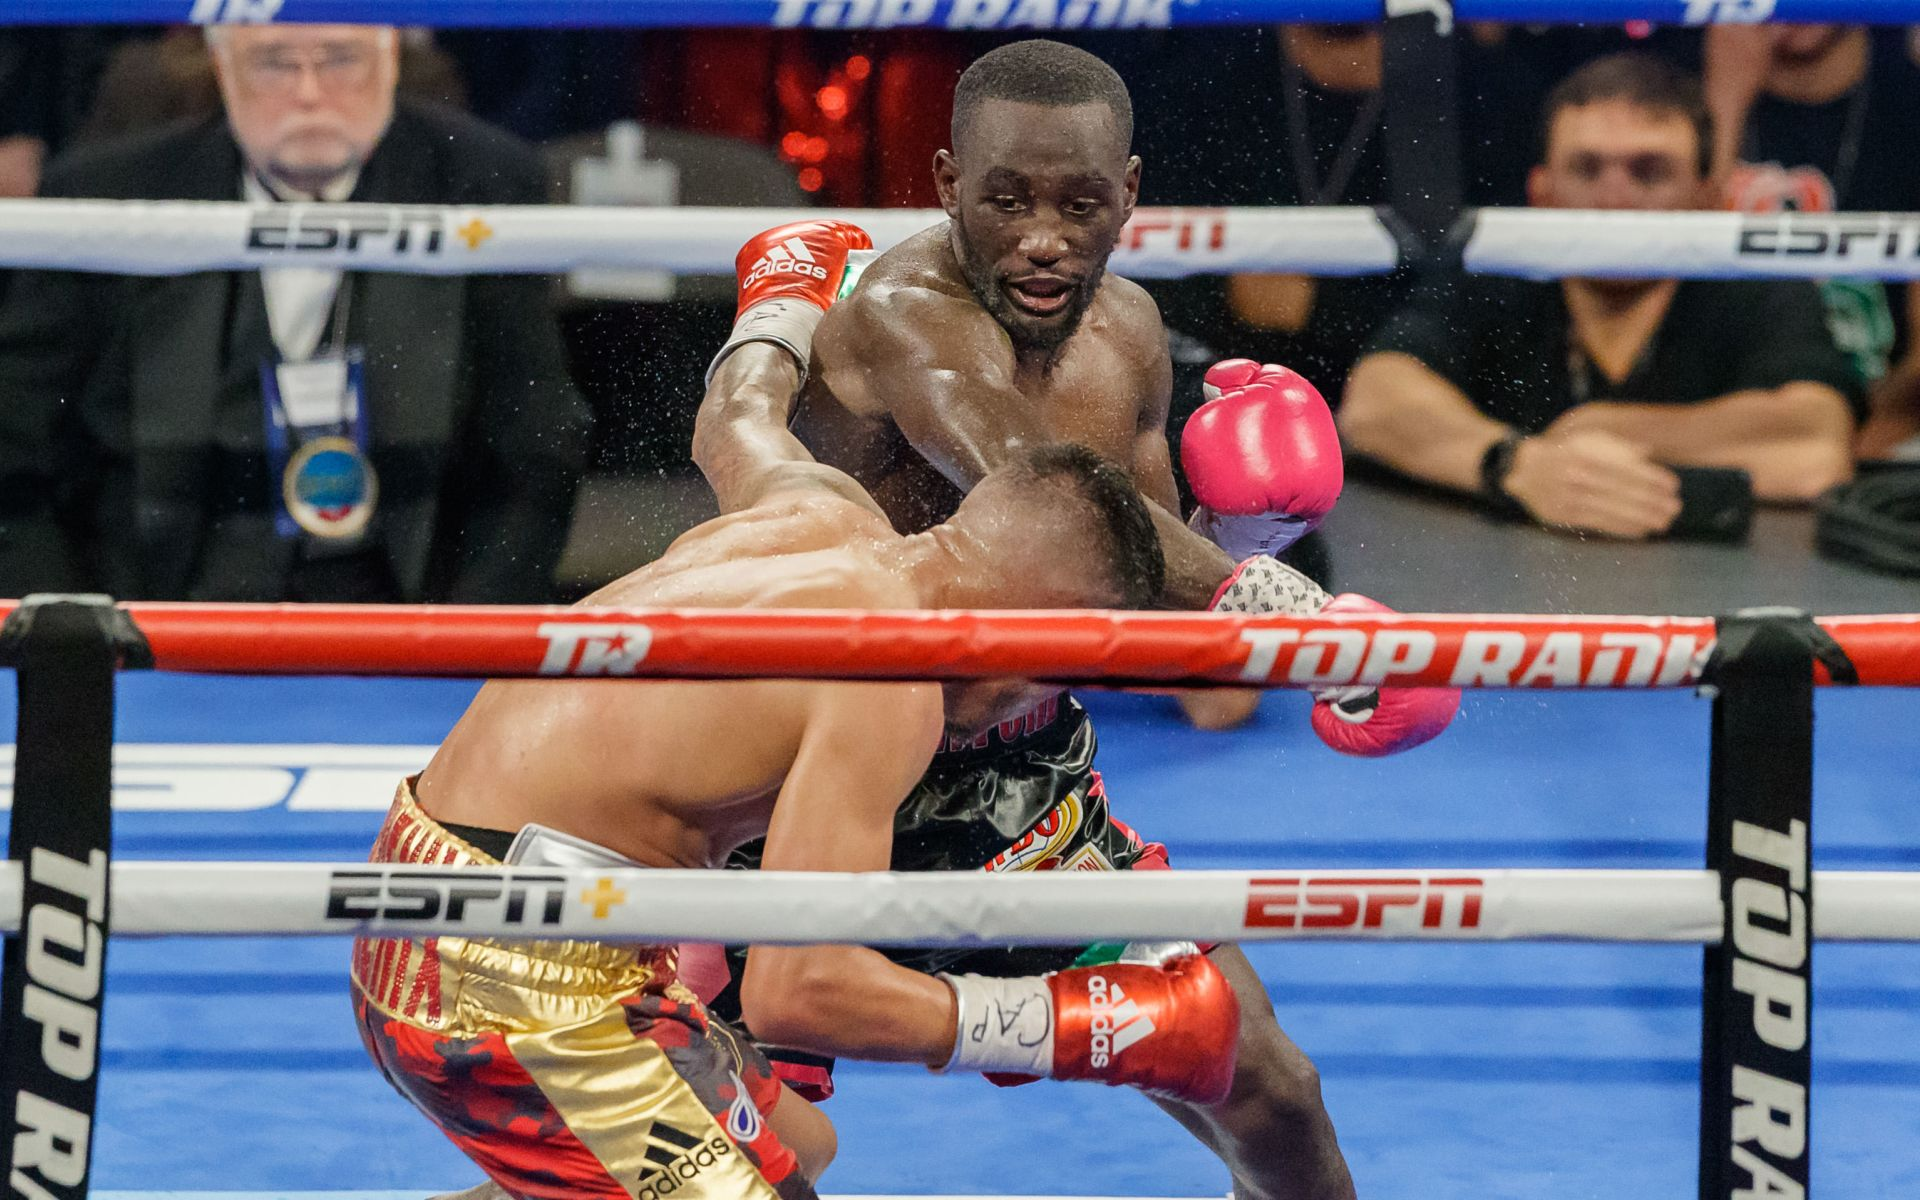 Crawford to win by KO betting